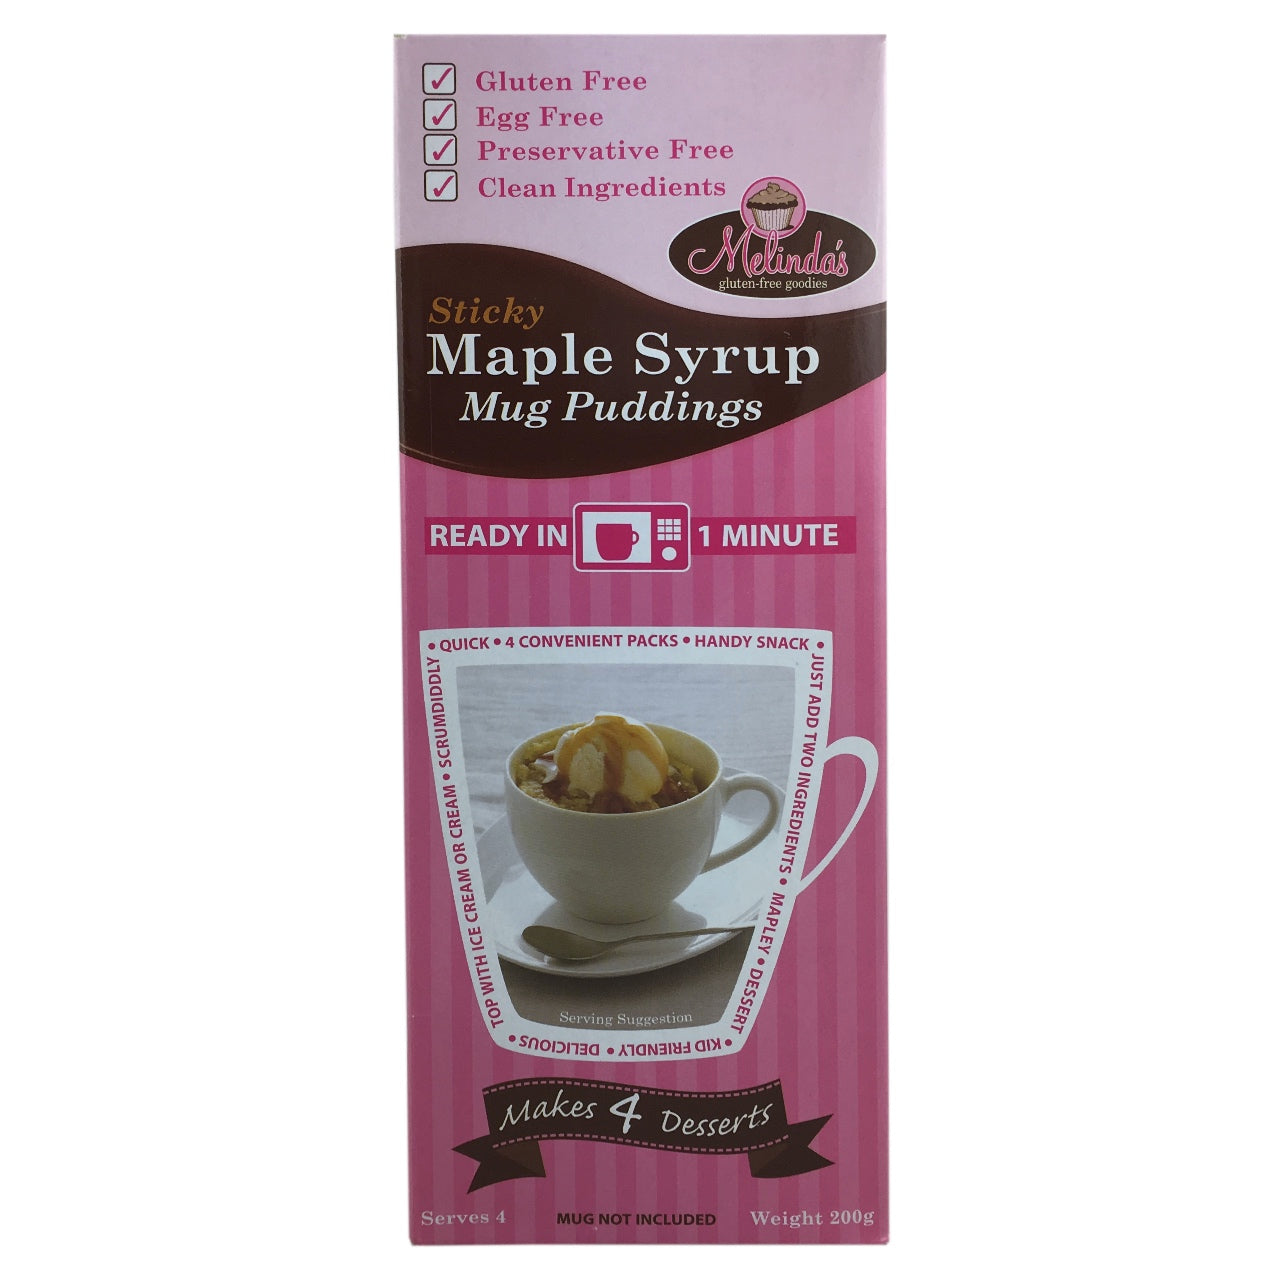 Melinda's Maple Syrup Mug Puddings